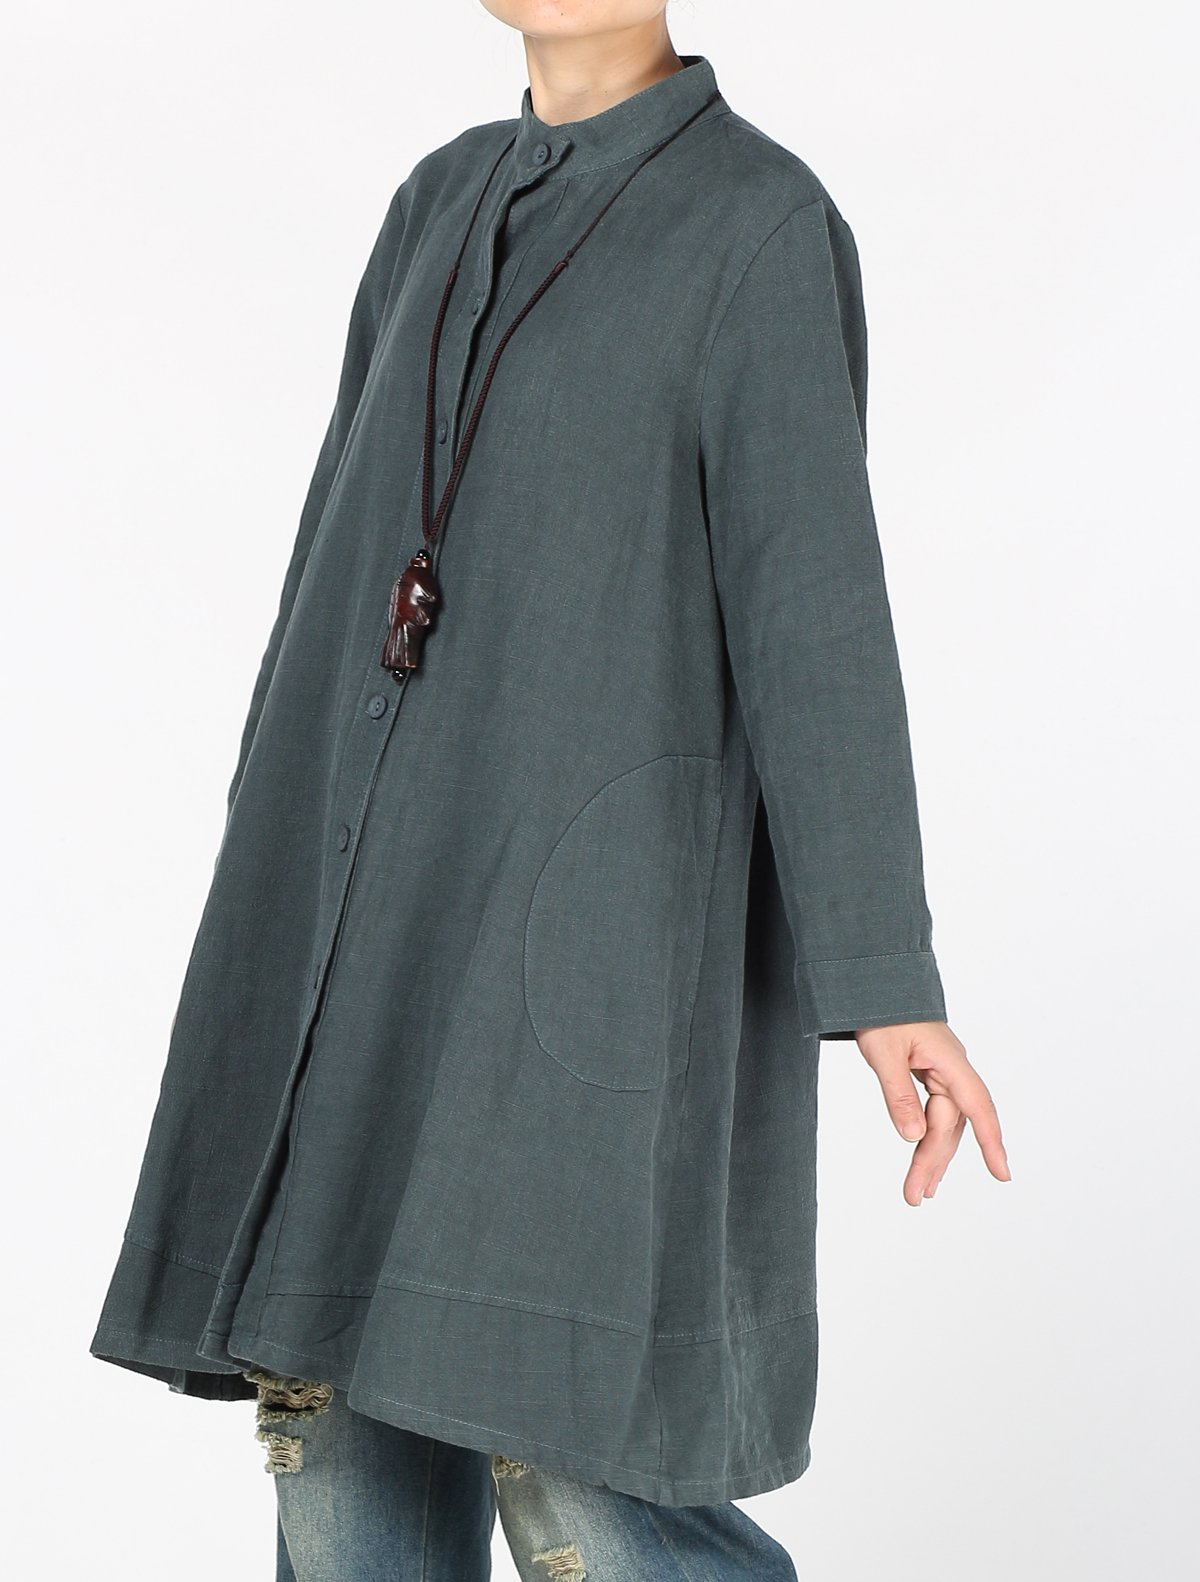 Mordenmiss Women's Cotton Linen Full Front Buttons Jacket Outfit with Pockets Style 1 L Dark Green by Mordenmiss (Image #4)